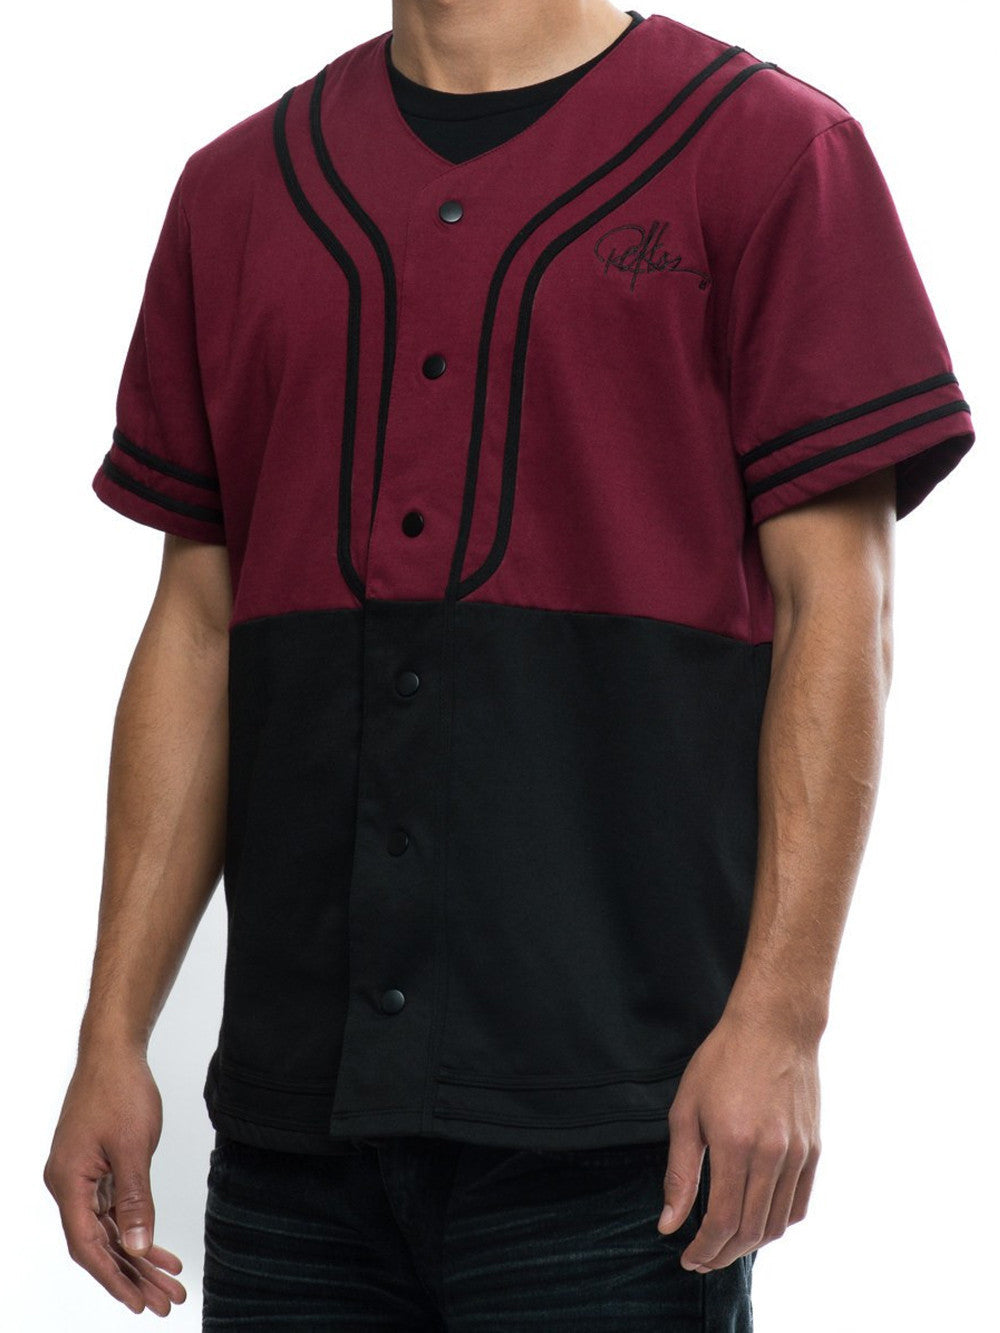 Young and Reckless Mens - Tops - Jerseys Winners Jersey - Burgundy/Black